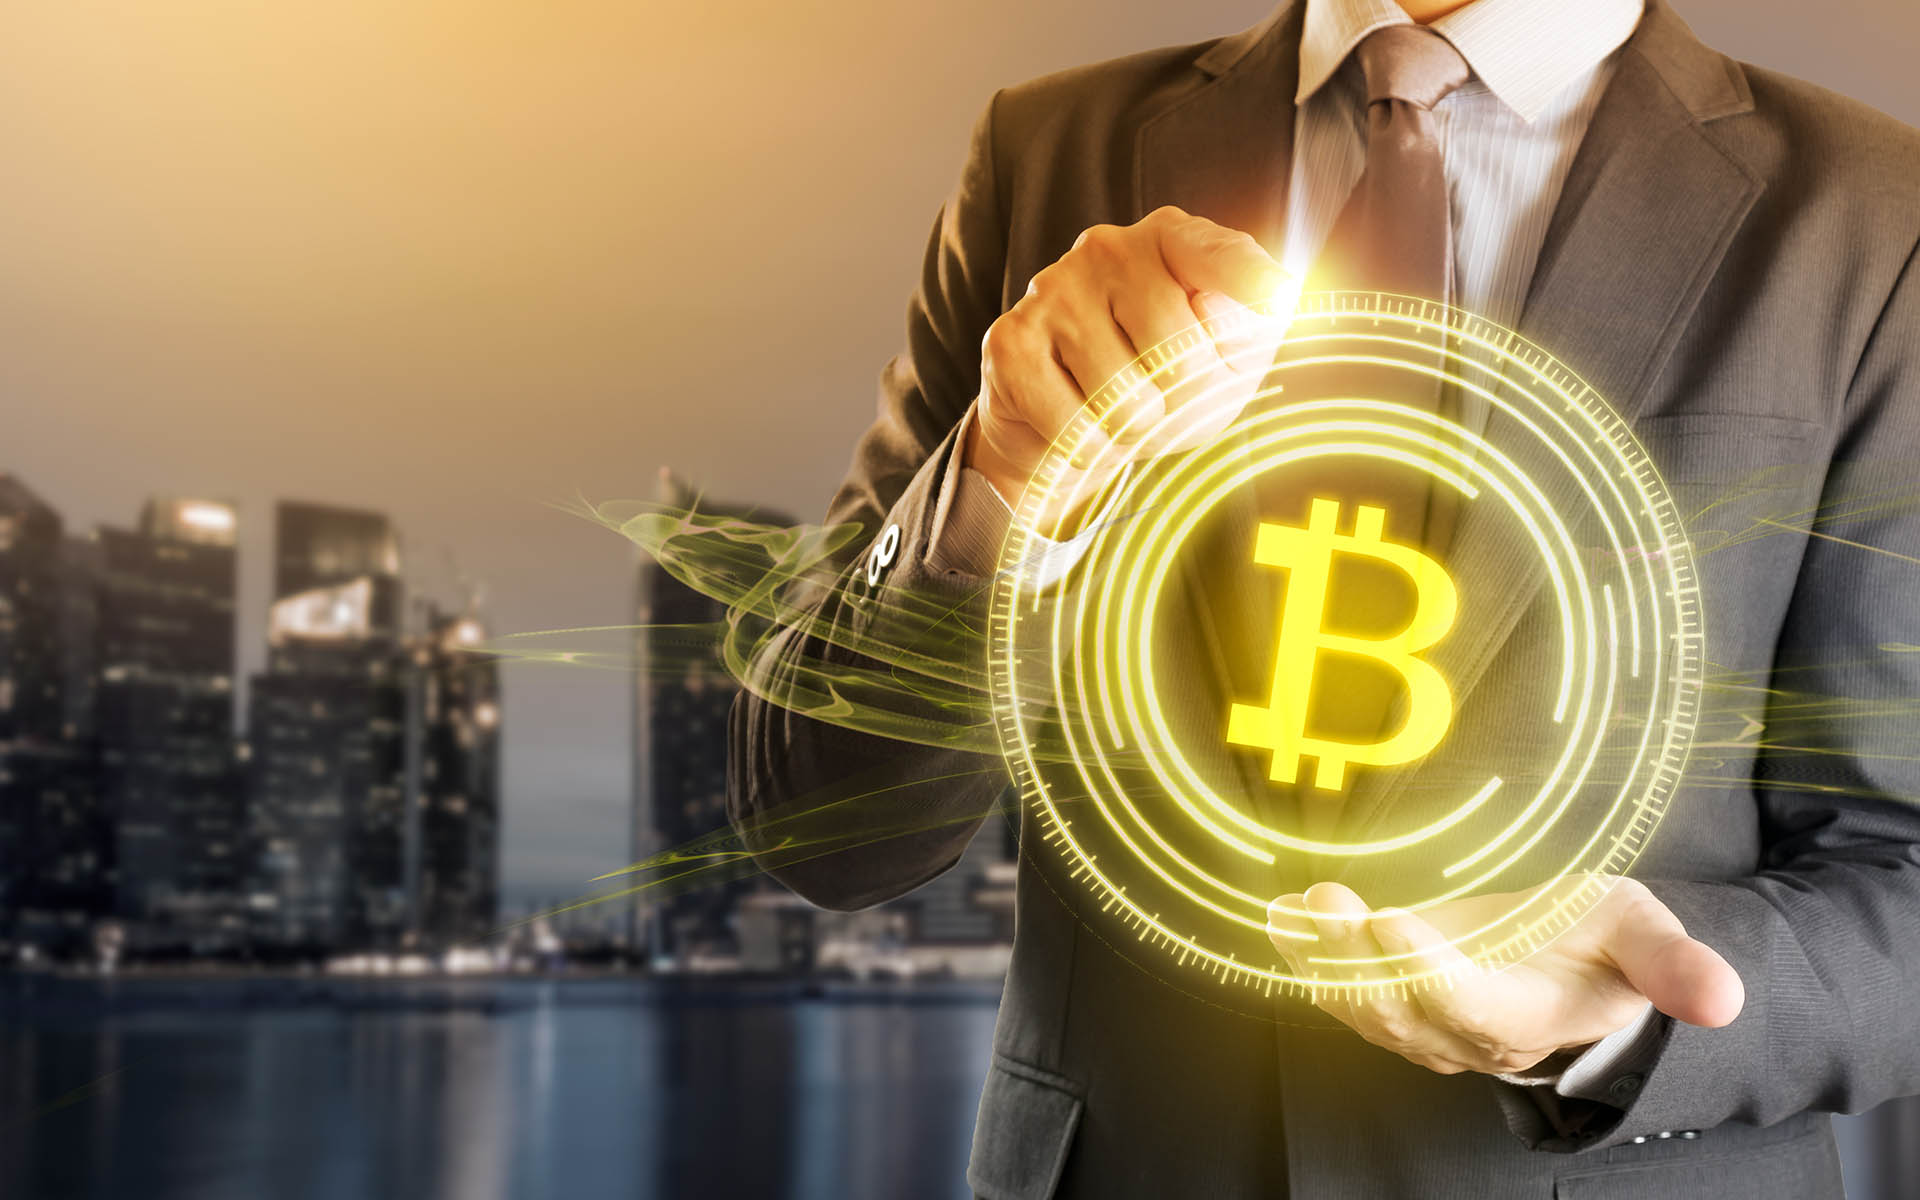 America's Largest Real Estate Company Recently Invested in Bitcoin